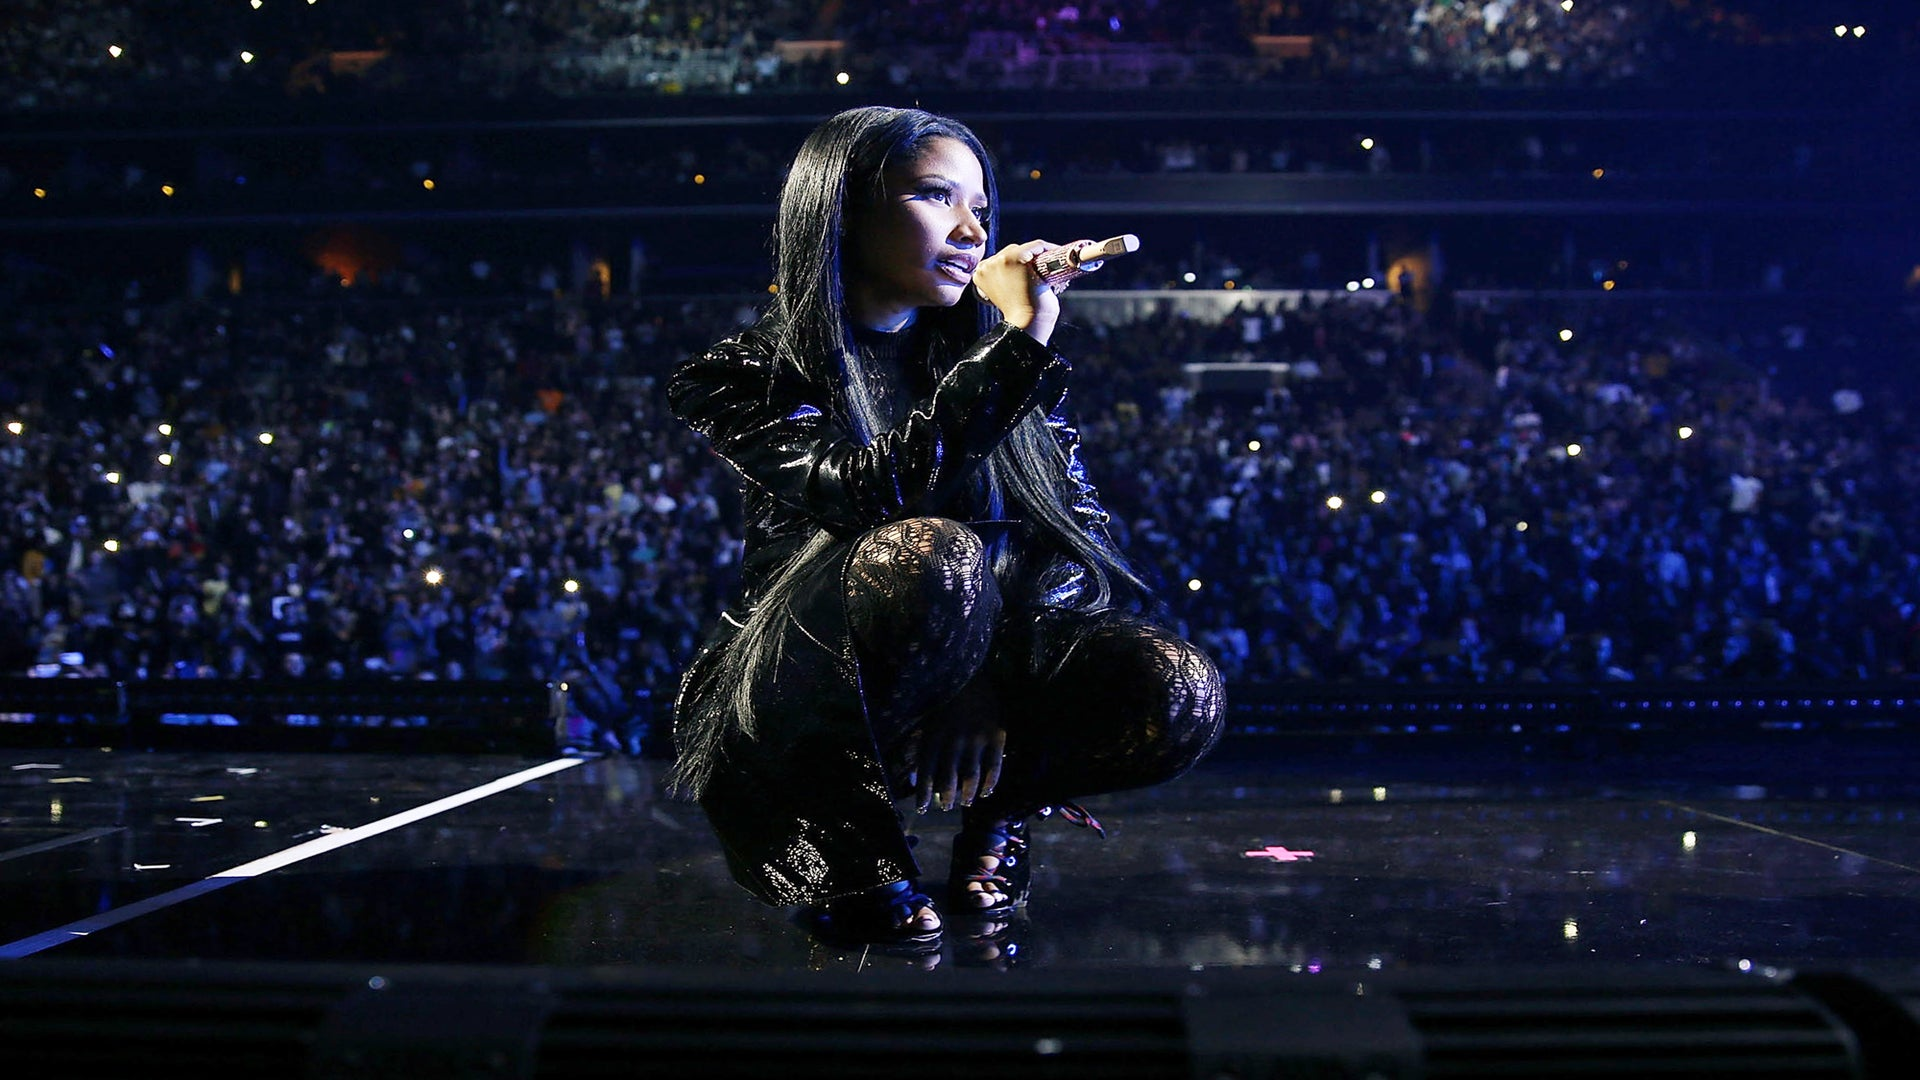 Nicki Minaj Will Bless Us Before The New Year With 'The Pinkprint Tour' Documentary